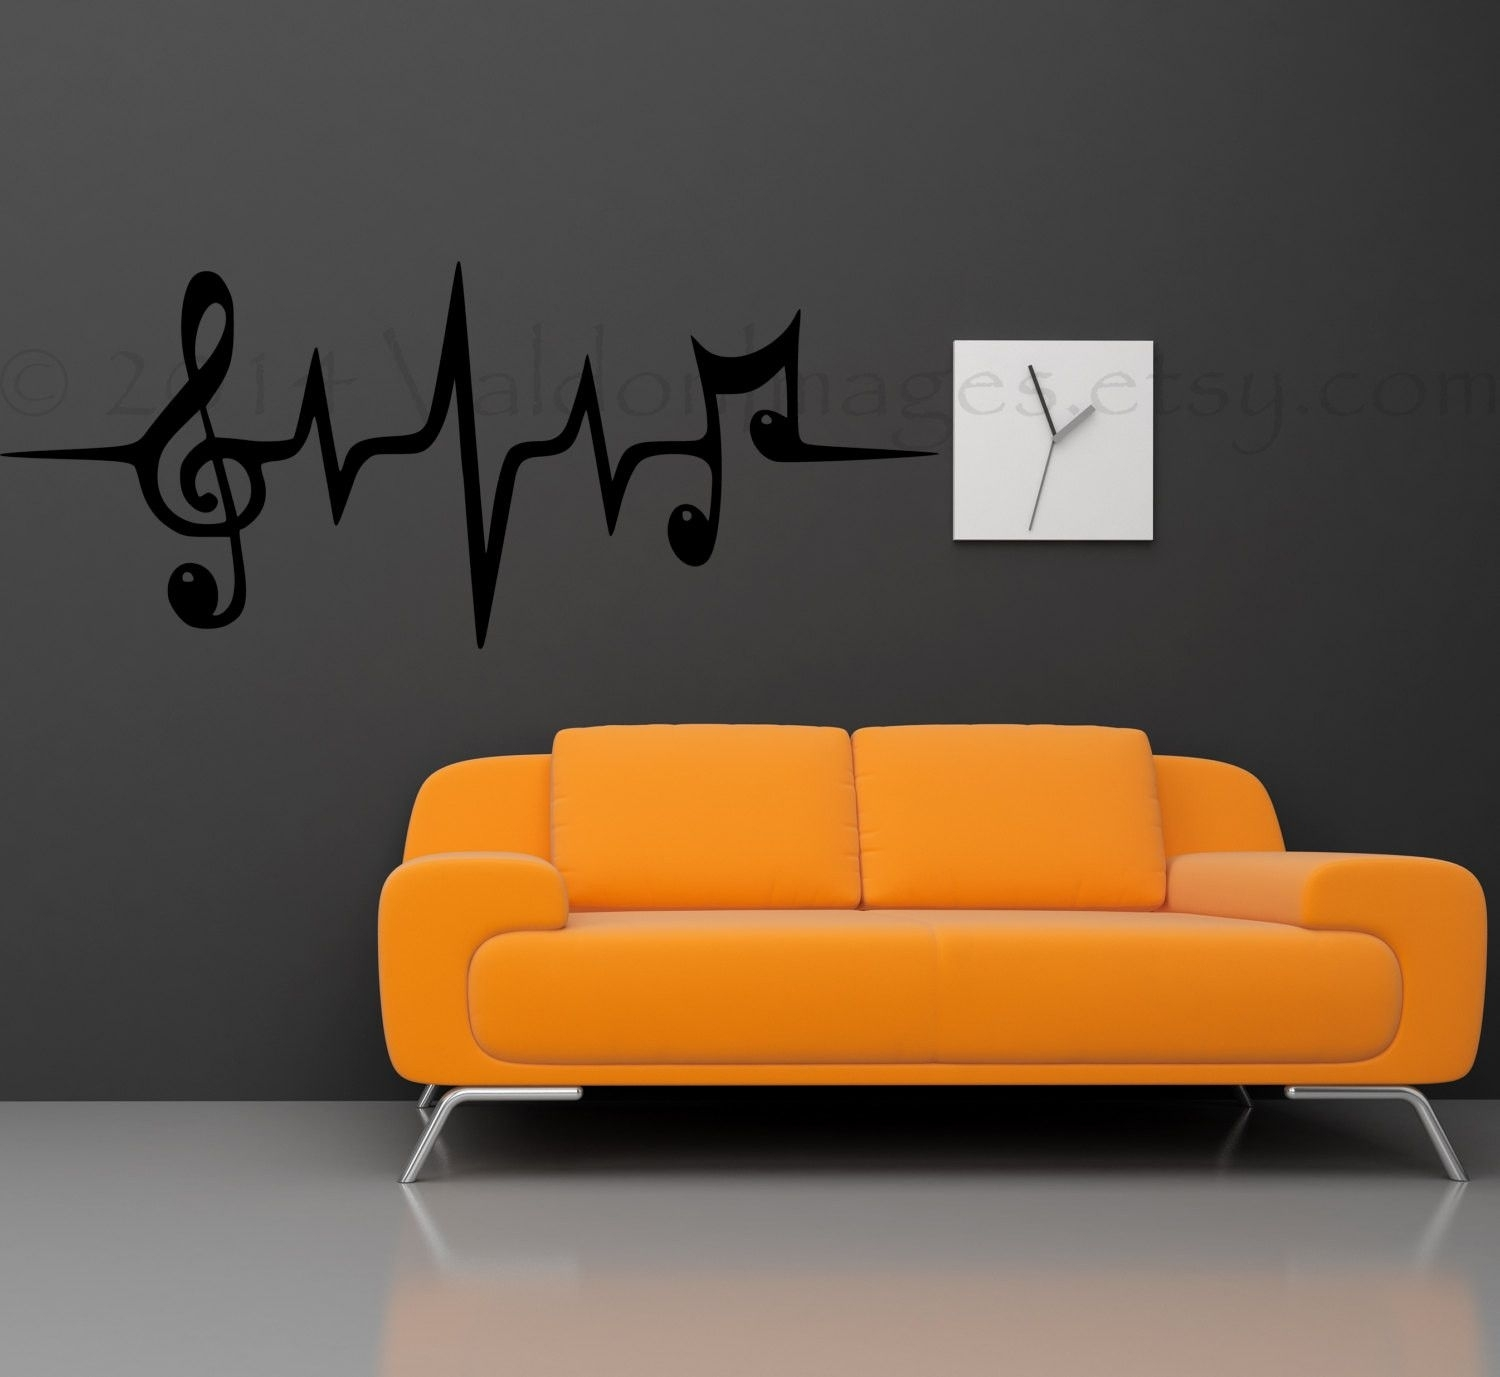 Astonishing Sensational Music Wall Art Treble Clef Frame Paper Zoom With Regard To Most Recently Released Music Wall Art (View 10 of 15)